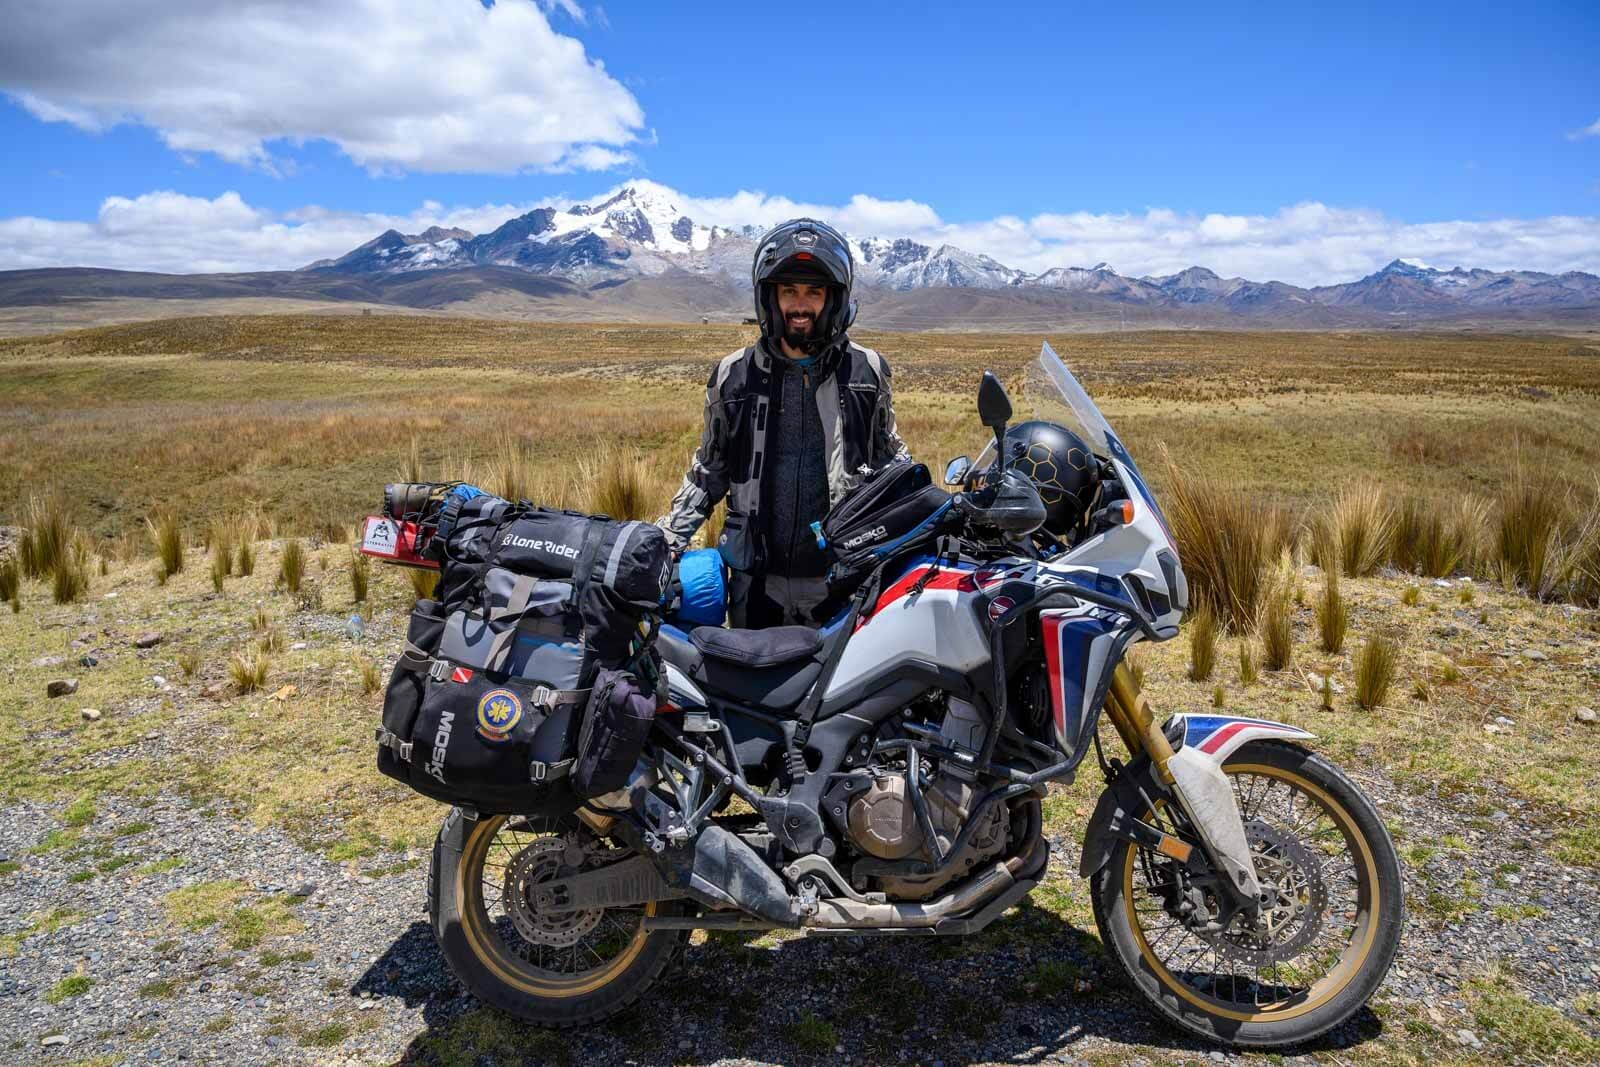 adam_eckart_africa_twin_adventure_motorcycle_trip